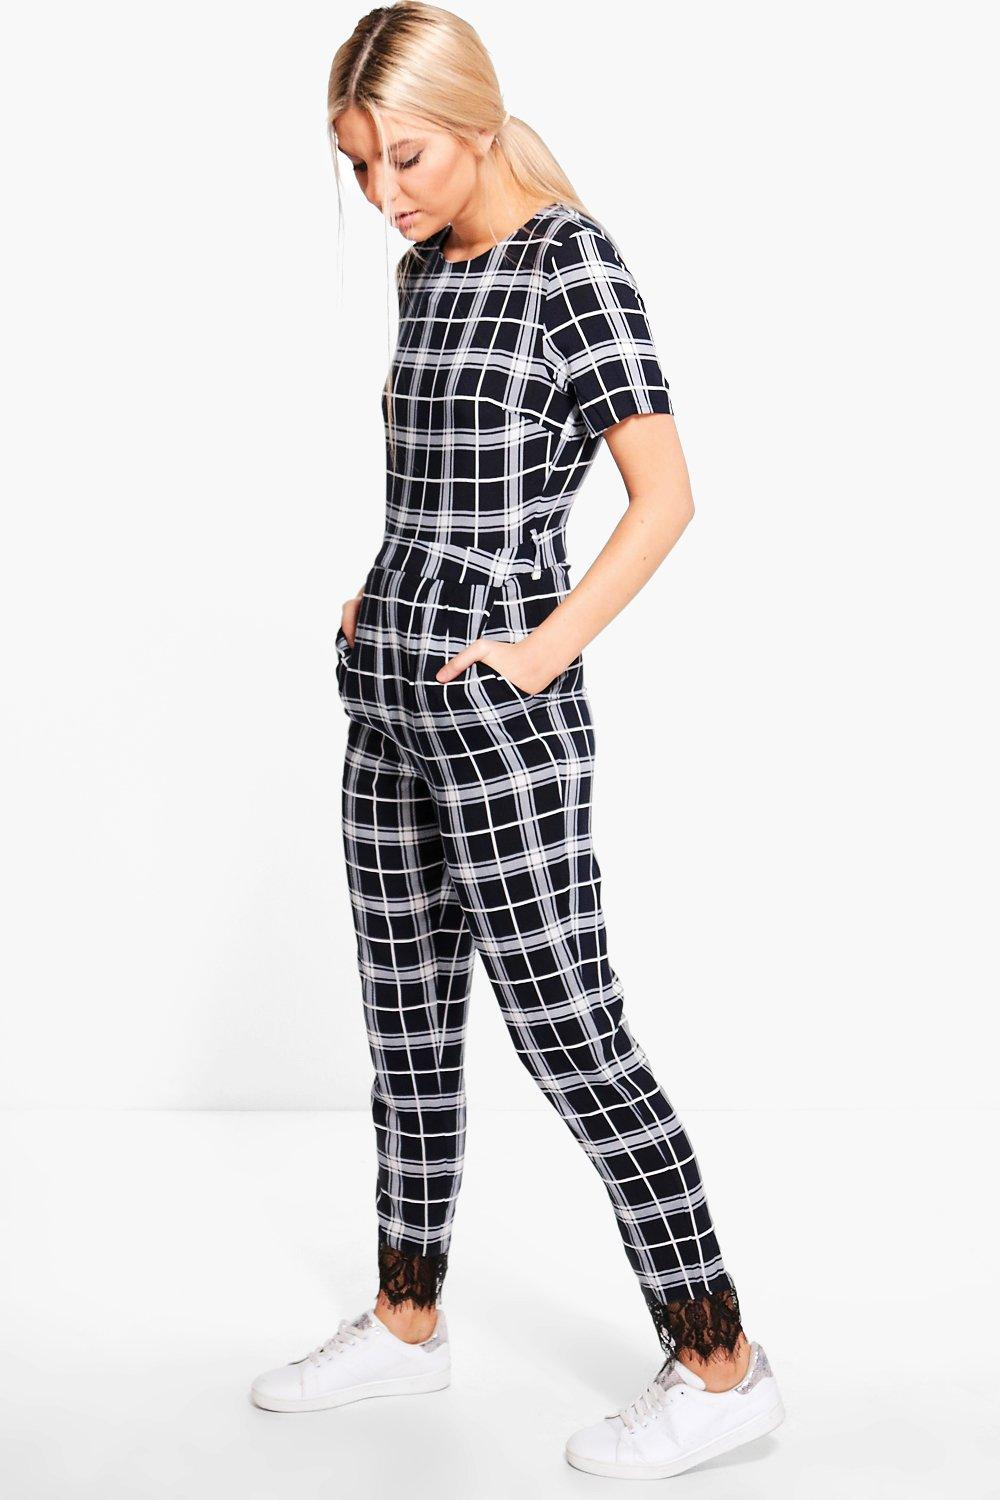 Hena Tartan Belted Round Neck Lace Detail Jumpsuit